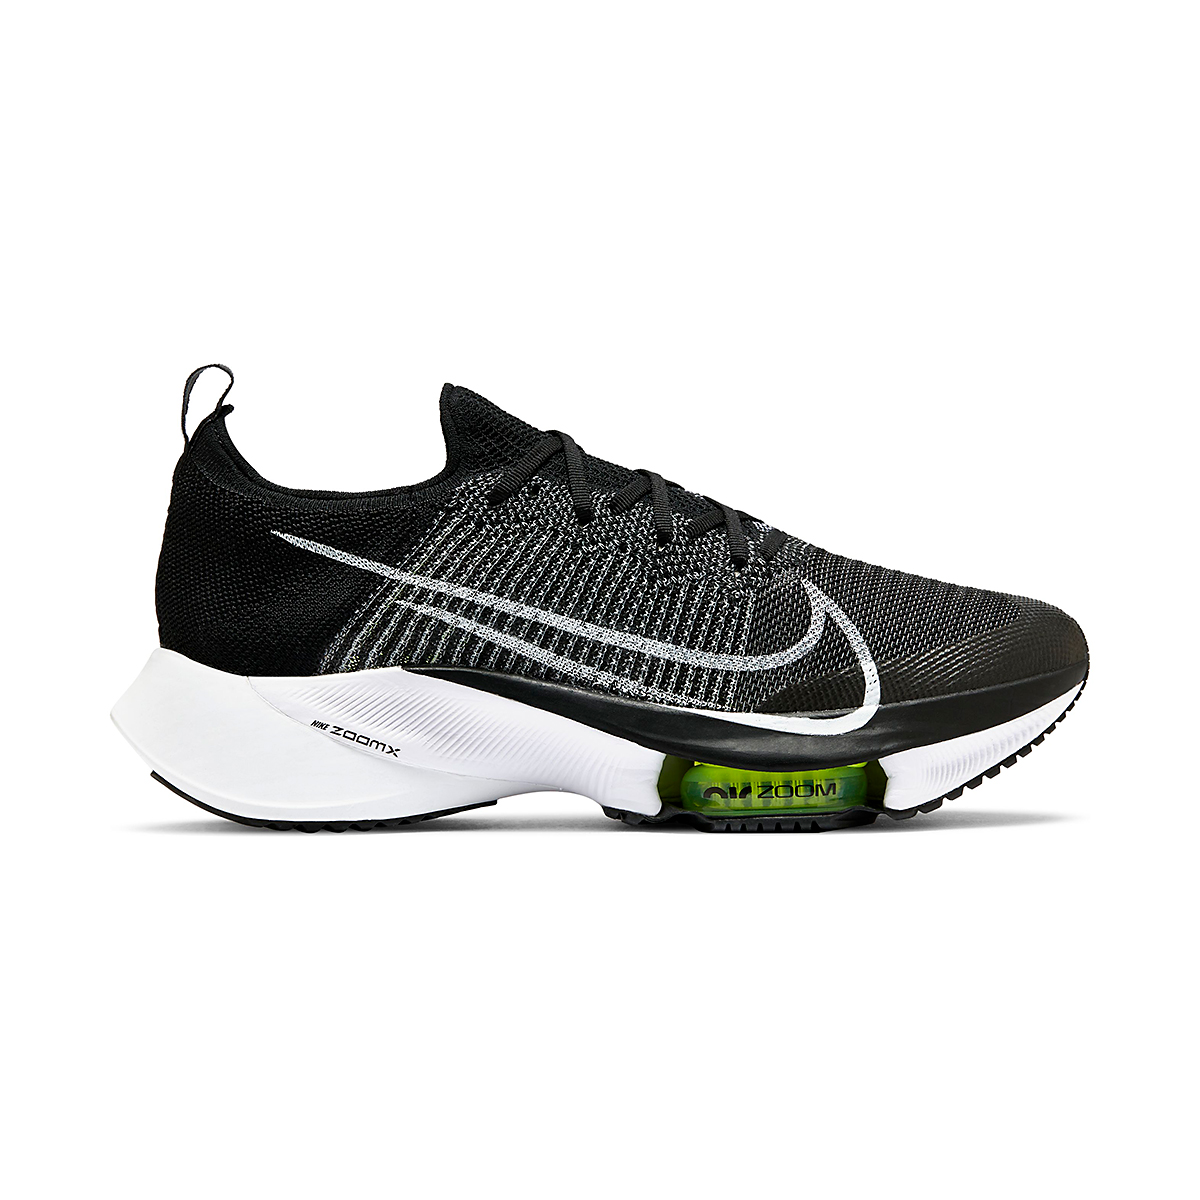 Men's Nike Air Zoom Tempo NEXT% Running Shoe - Color: Black/White-Volt - Size: 6 - Width: Regular, Black/White-Volt, large, image 1